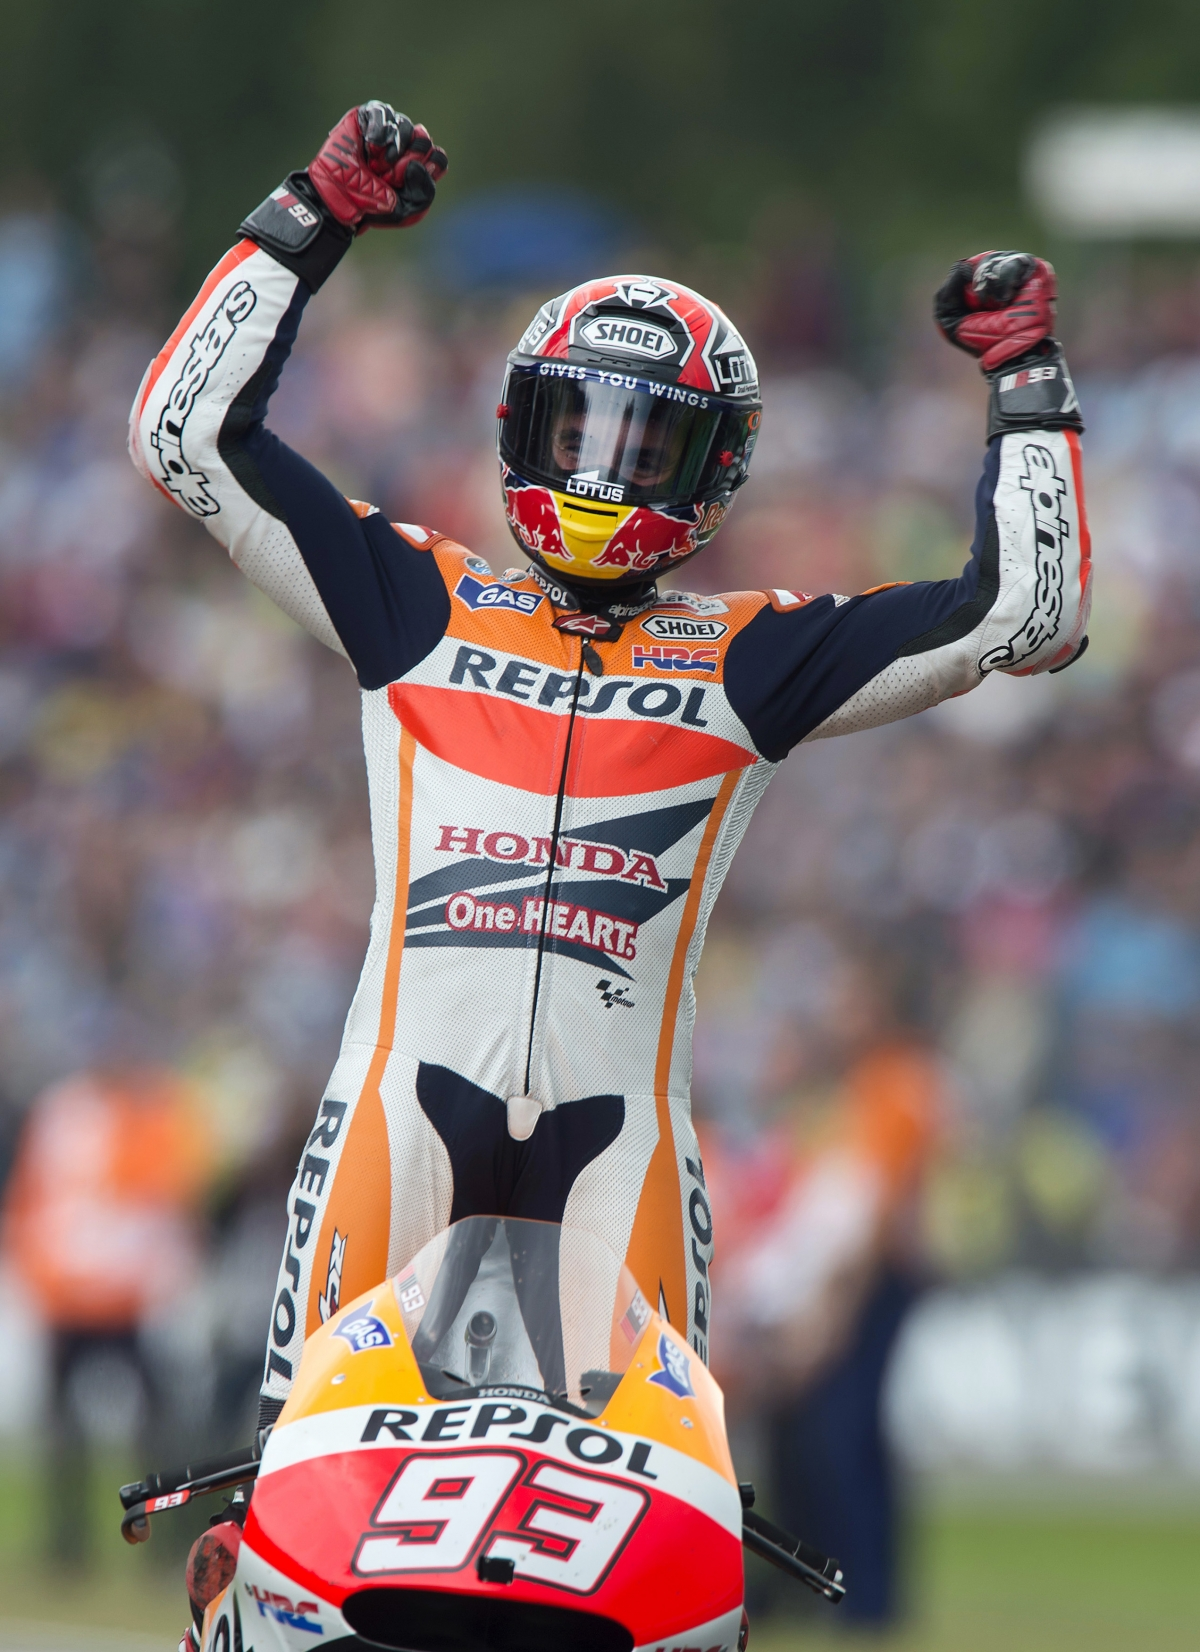 MotoGP San Marino Grand Prix 2016: Where to watch practice live and preview